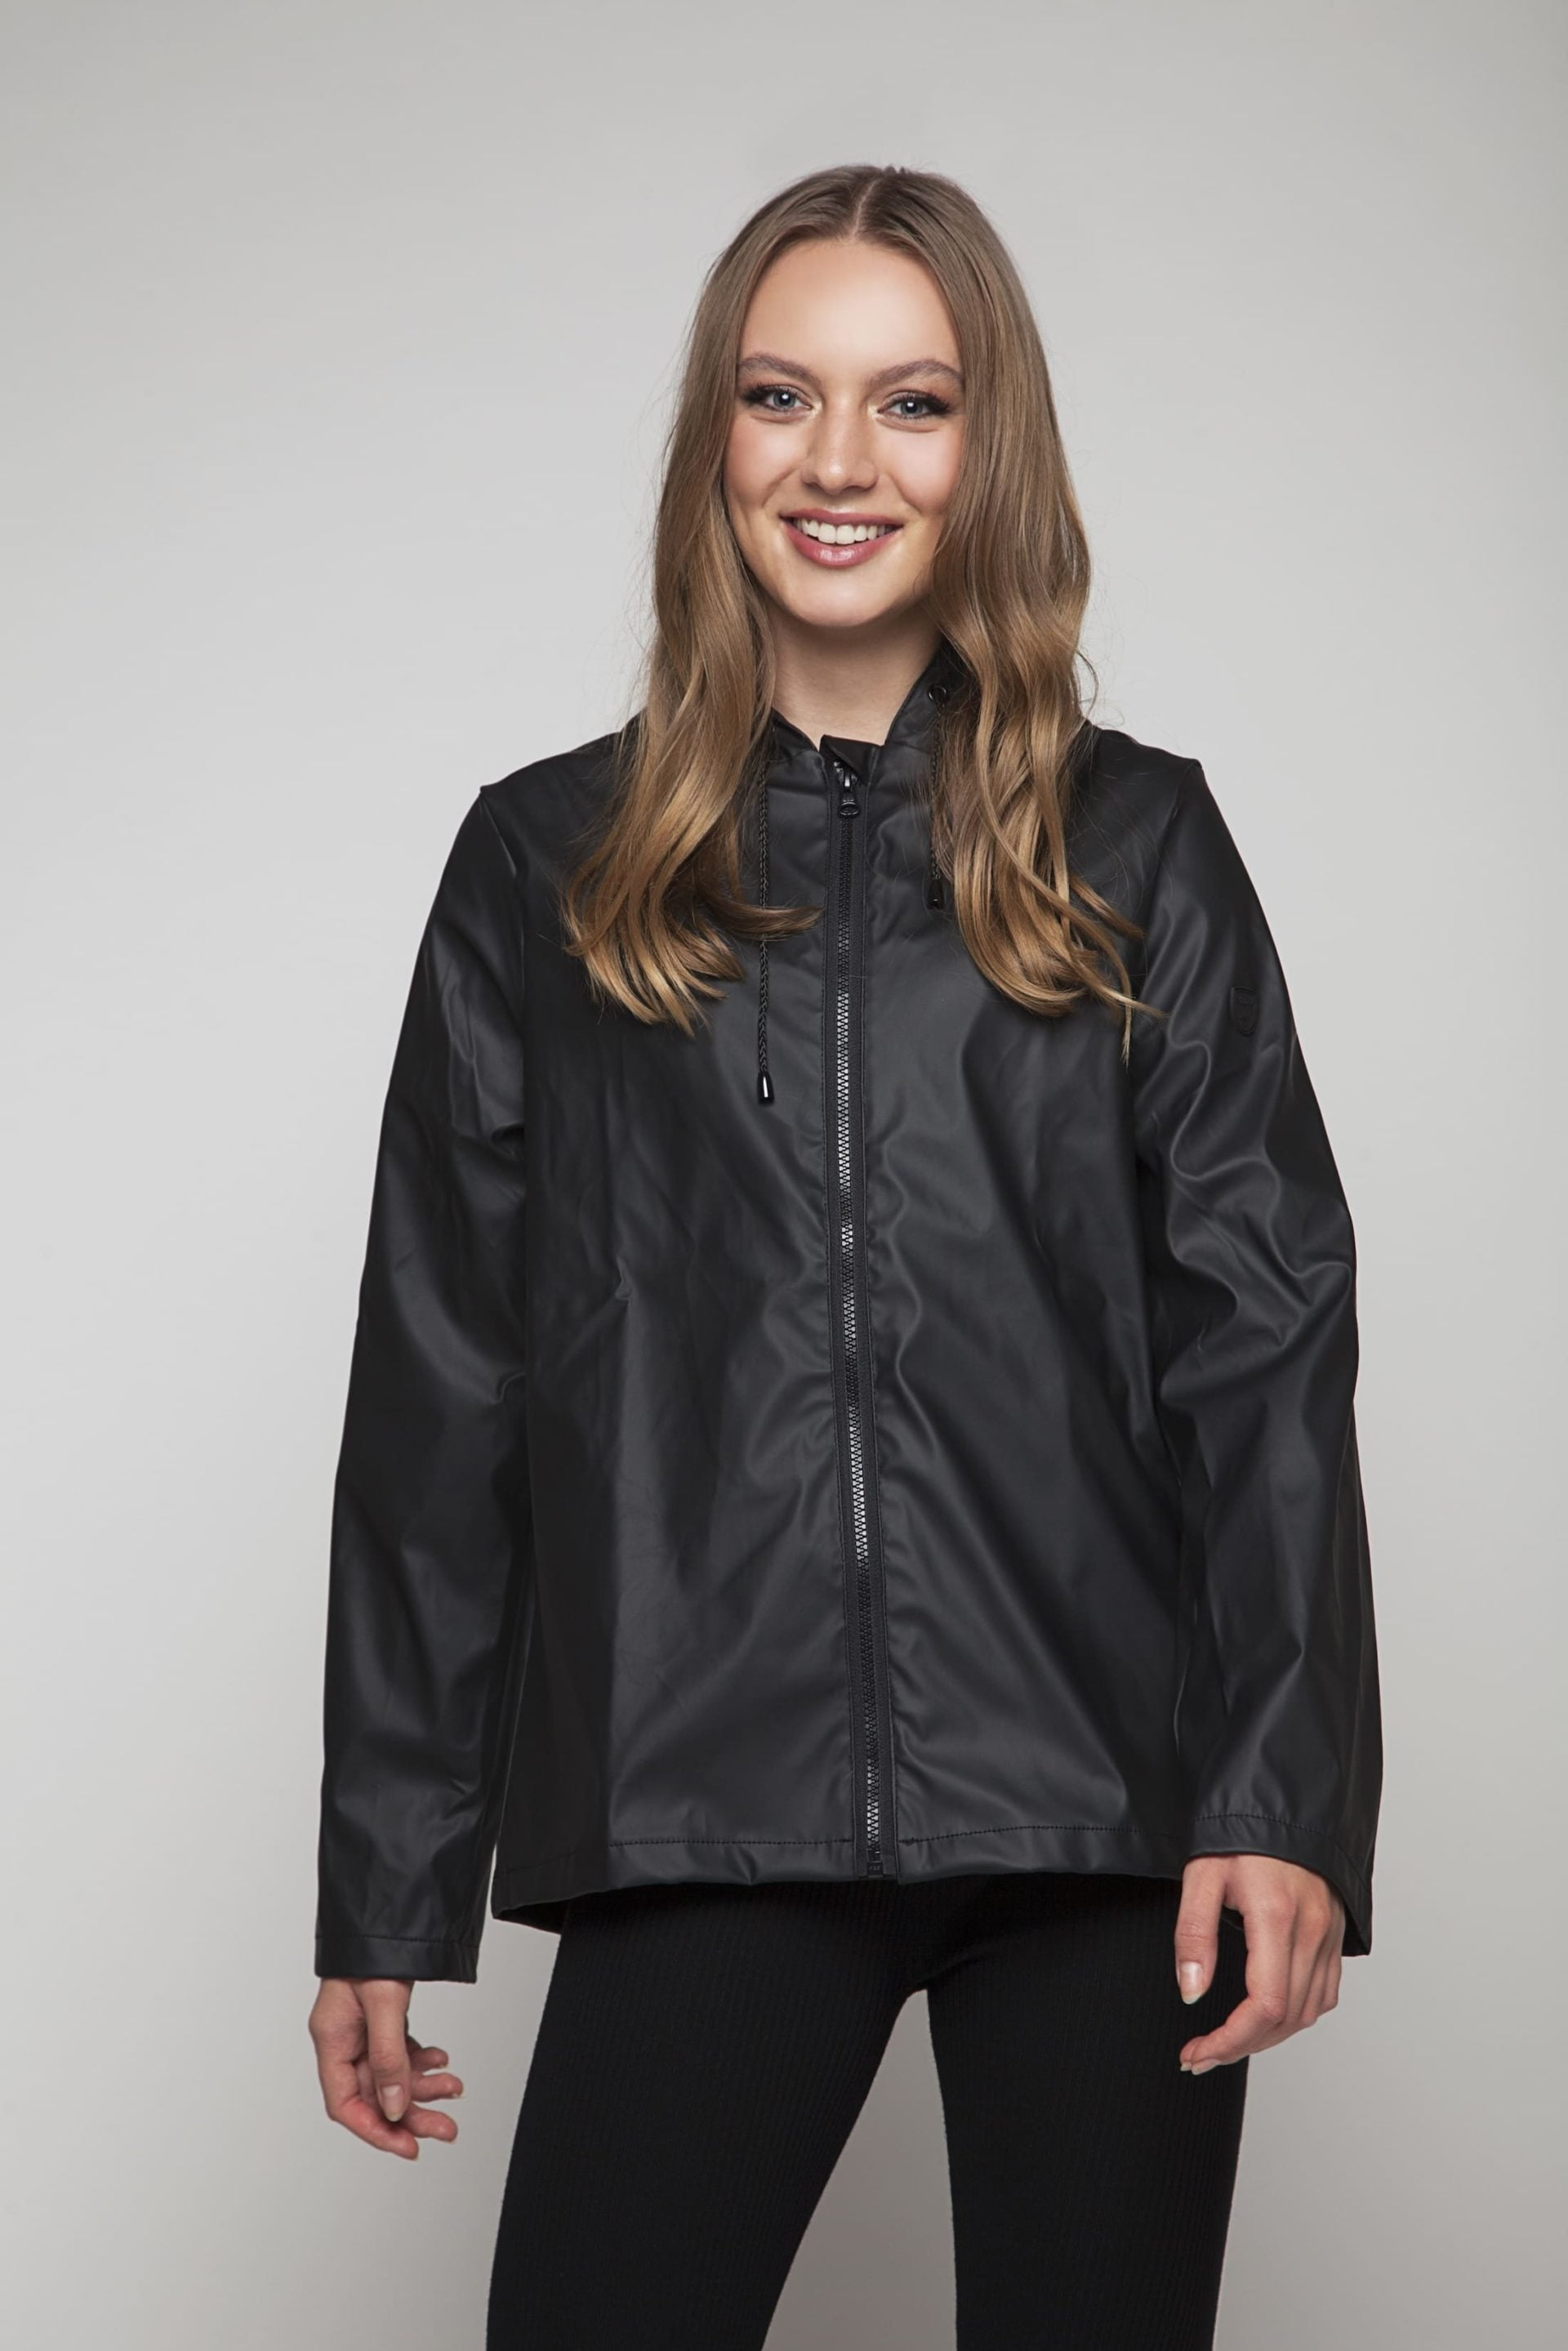 Short rainjacket